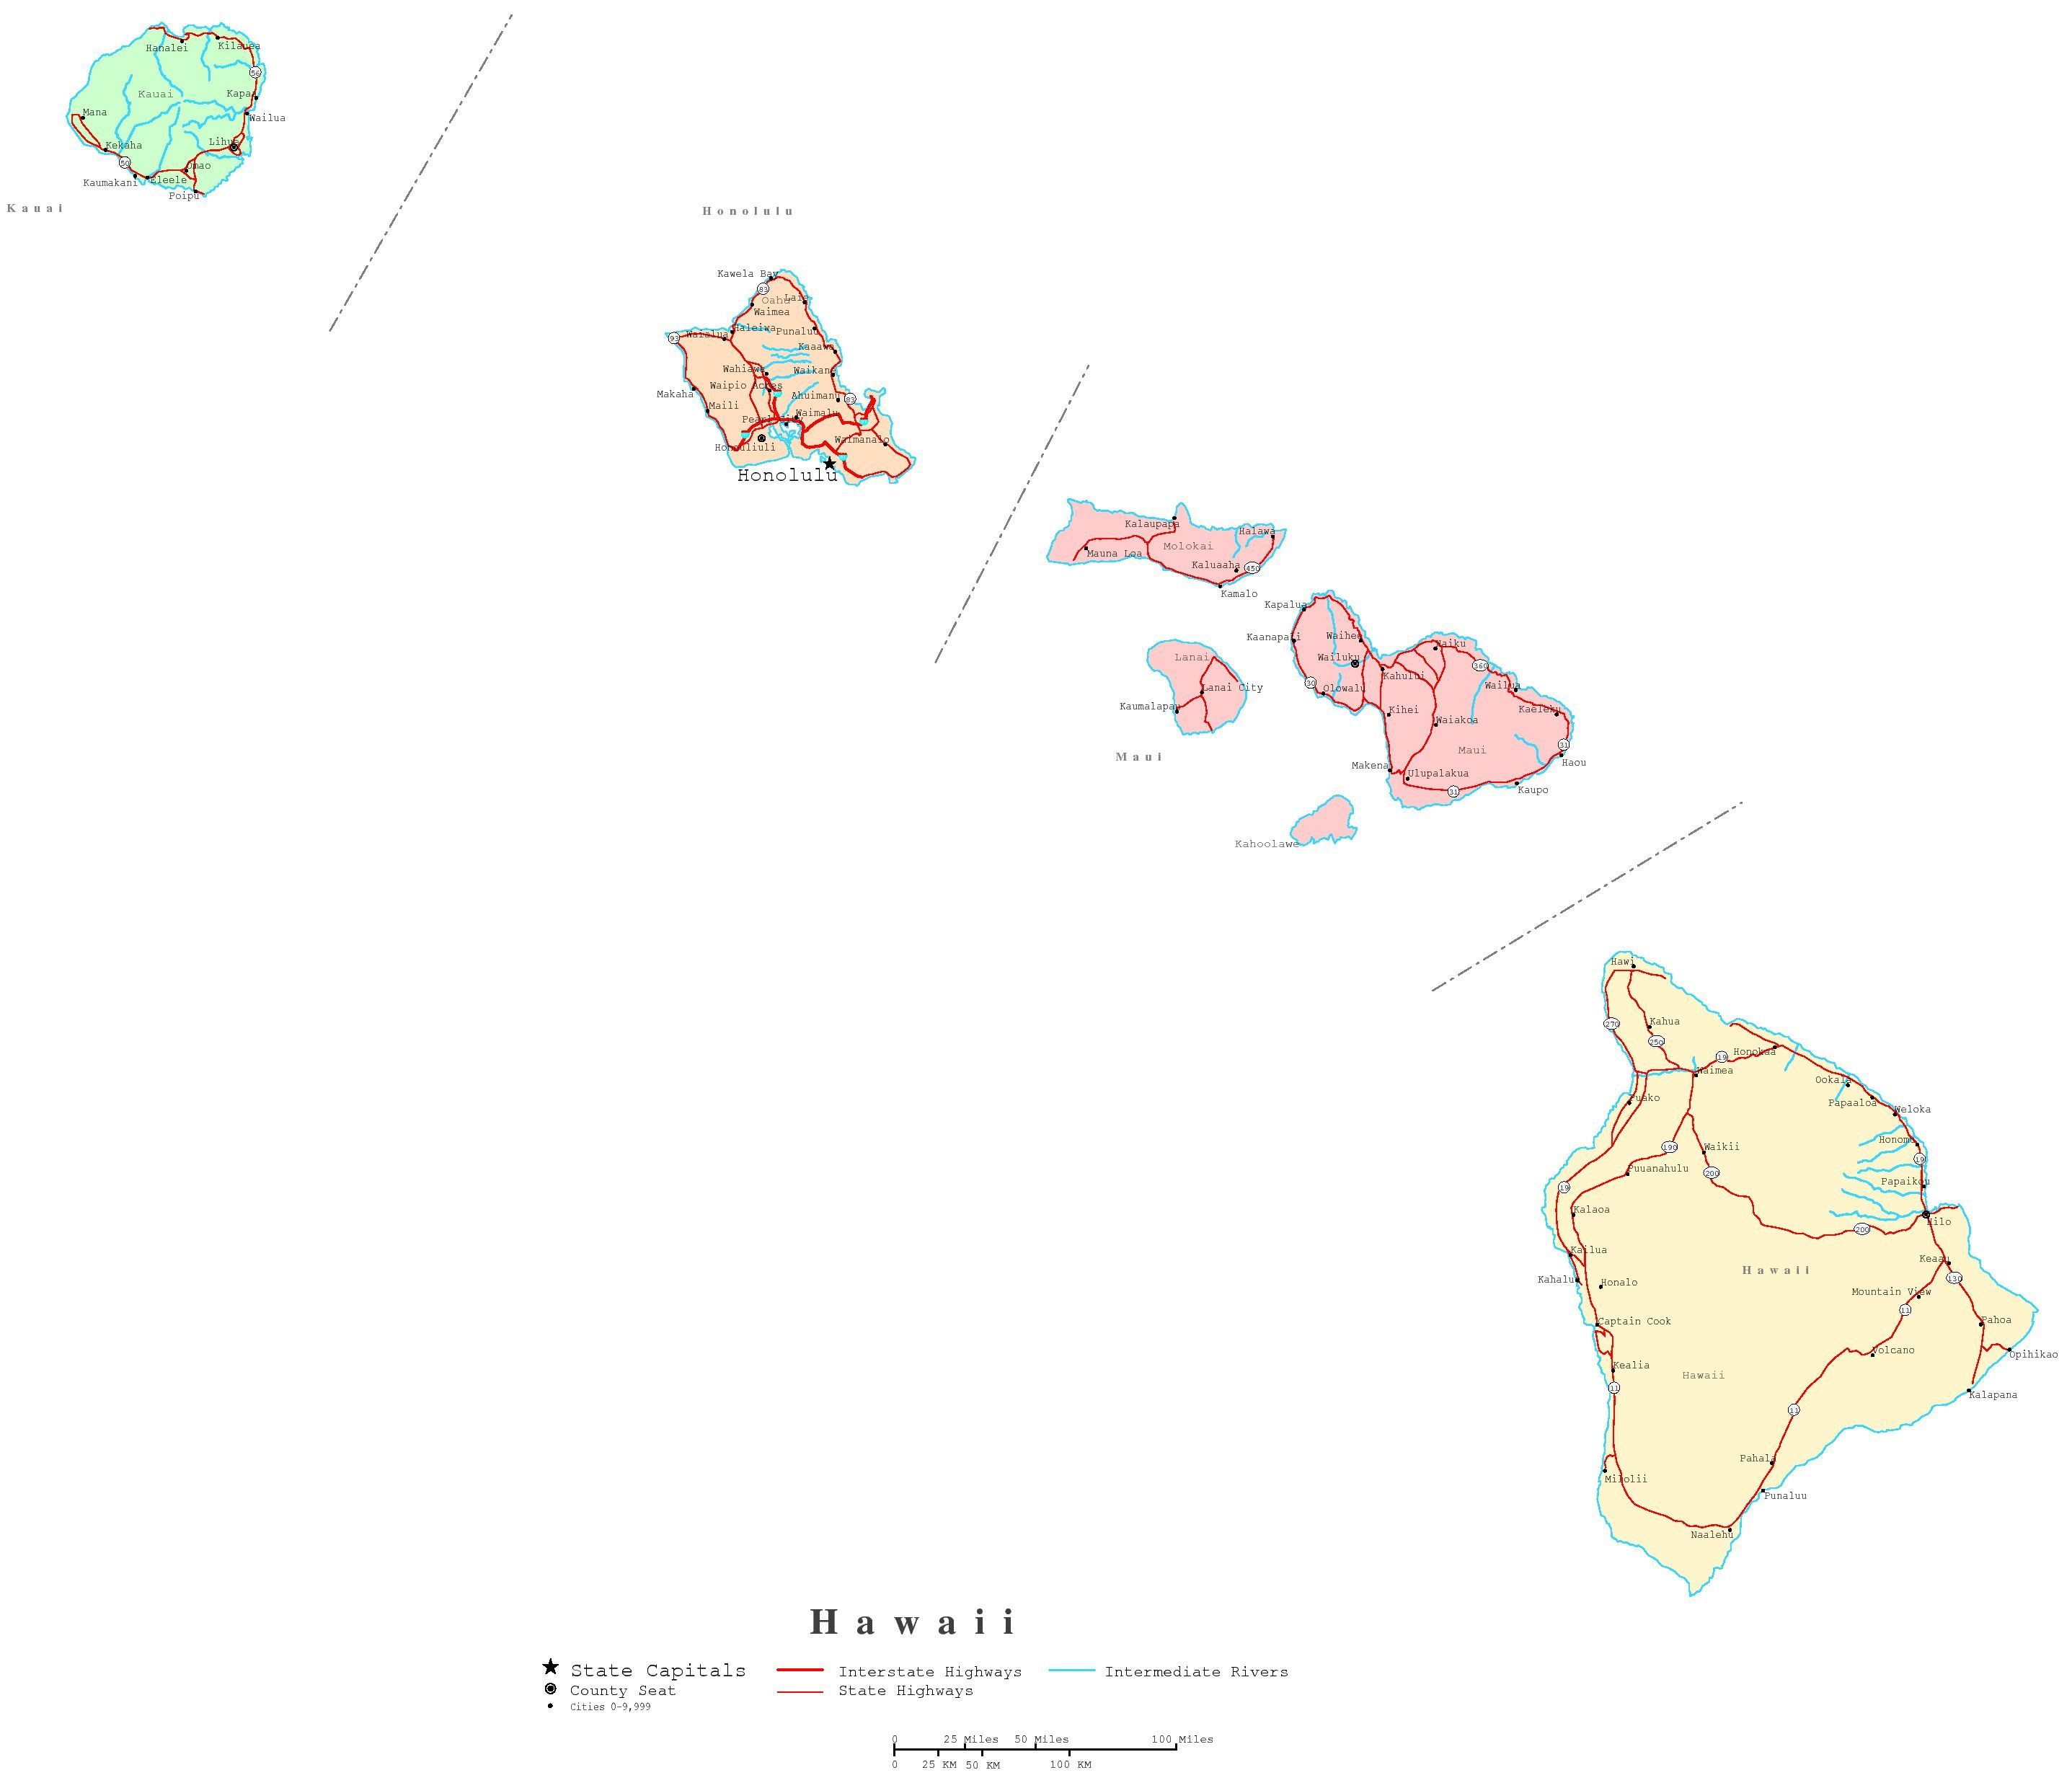 Free Printable Hawaii State Maps